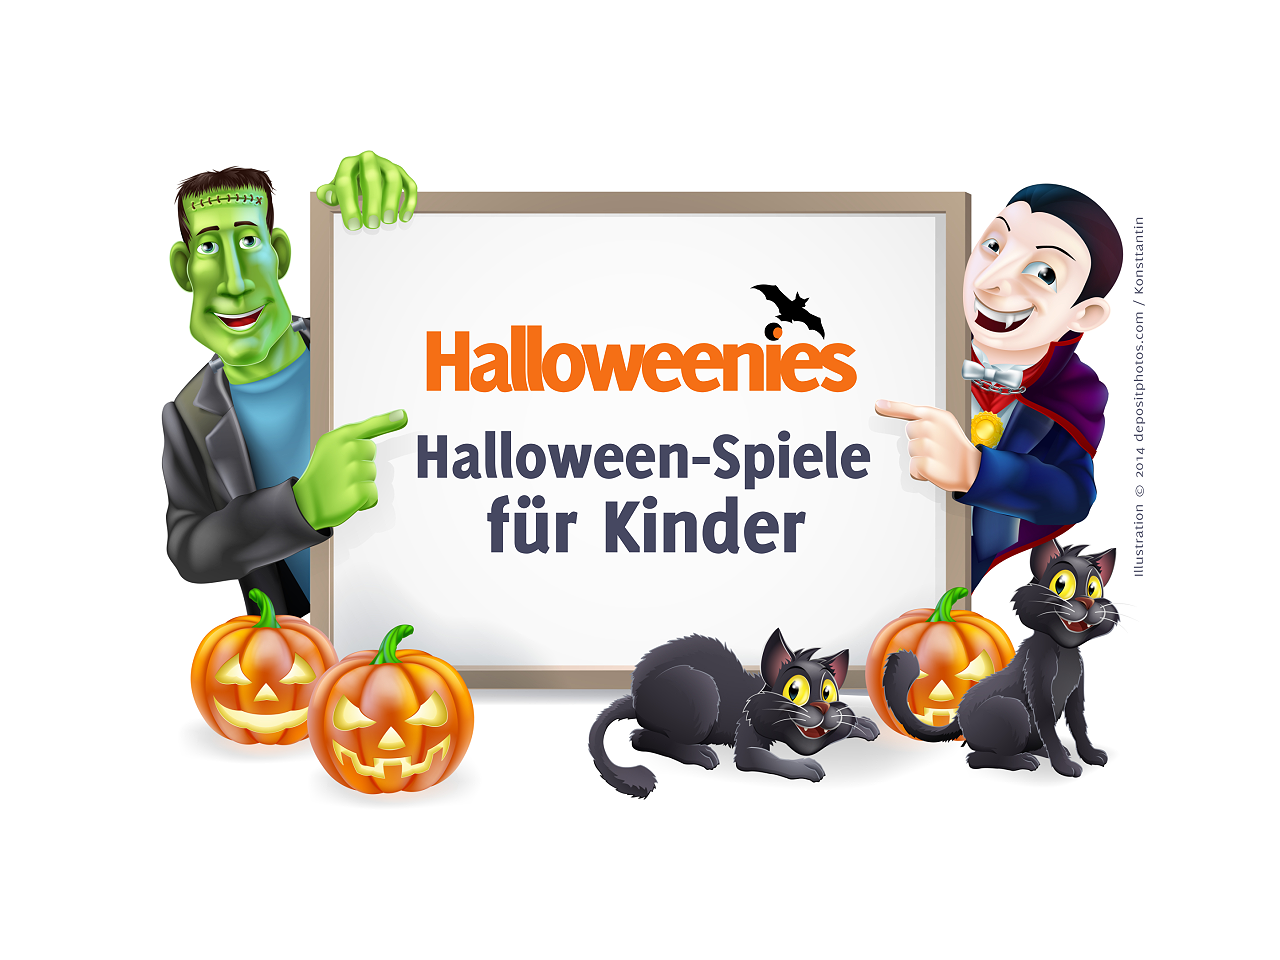 halloween r tsel und spiele f r kinder halloween party tipps und dekoration von. Black Bedroom Furniture Sets. Home Design Ideas